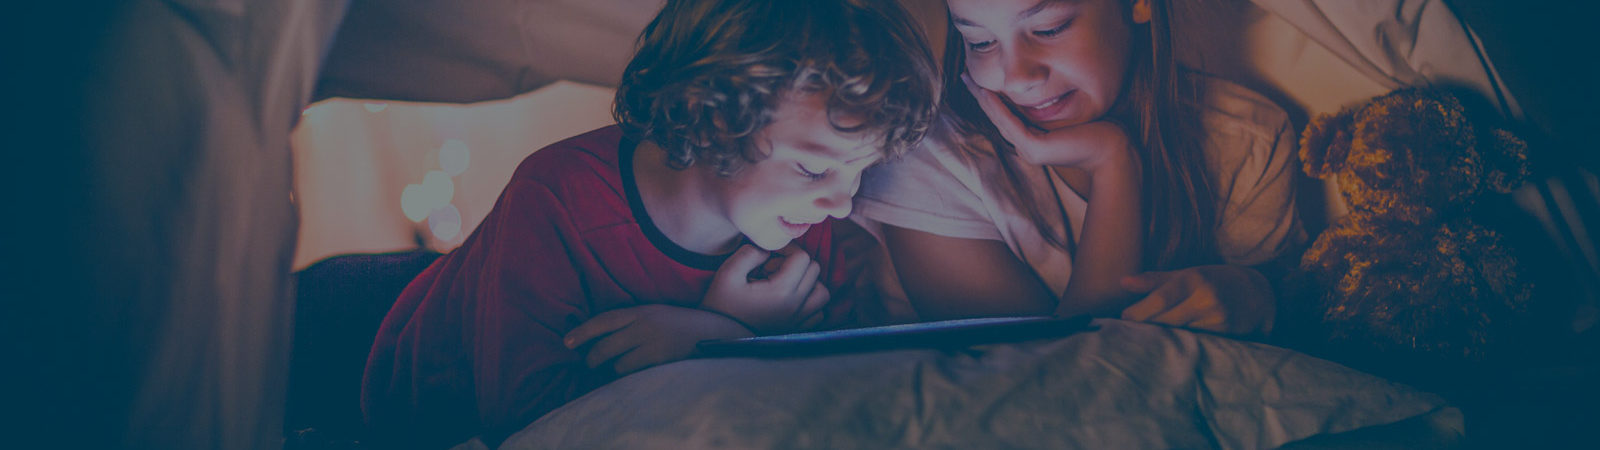 KIds with iPad - Customer experience